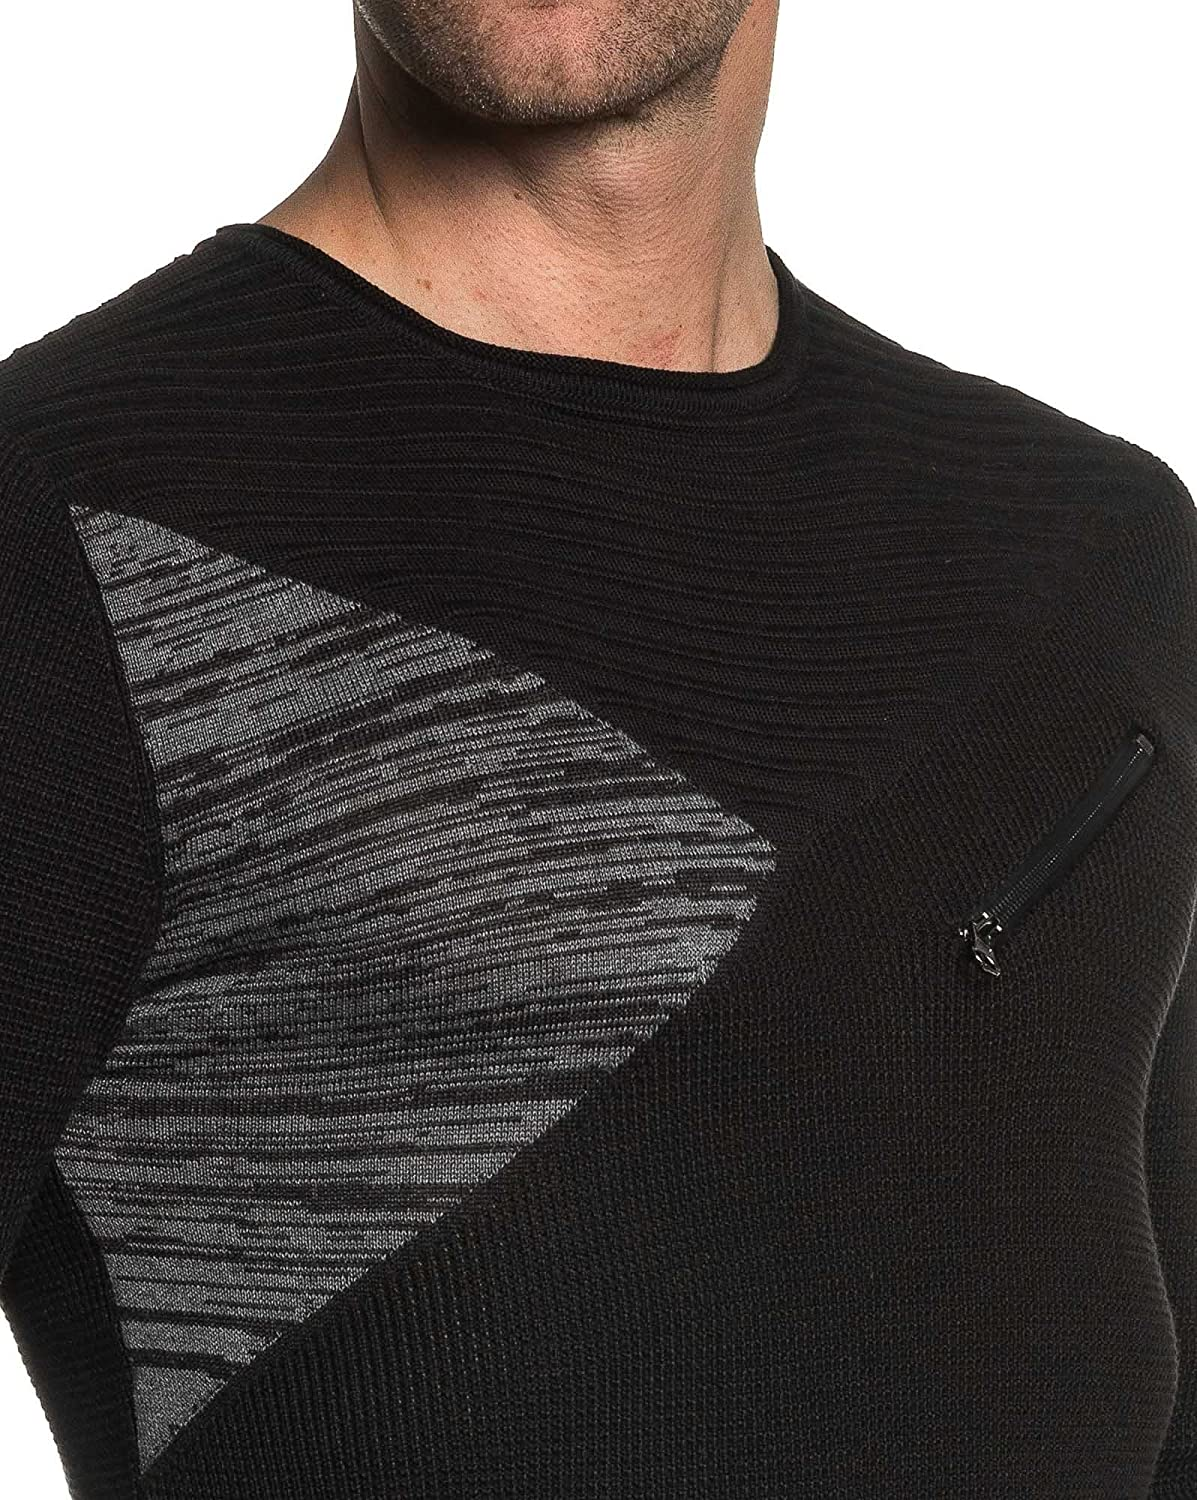 BLZ jeans - fashion black zipper sweater fancy man